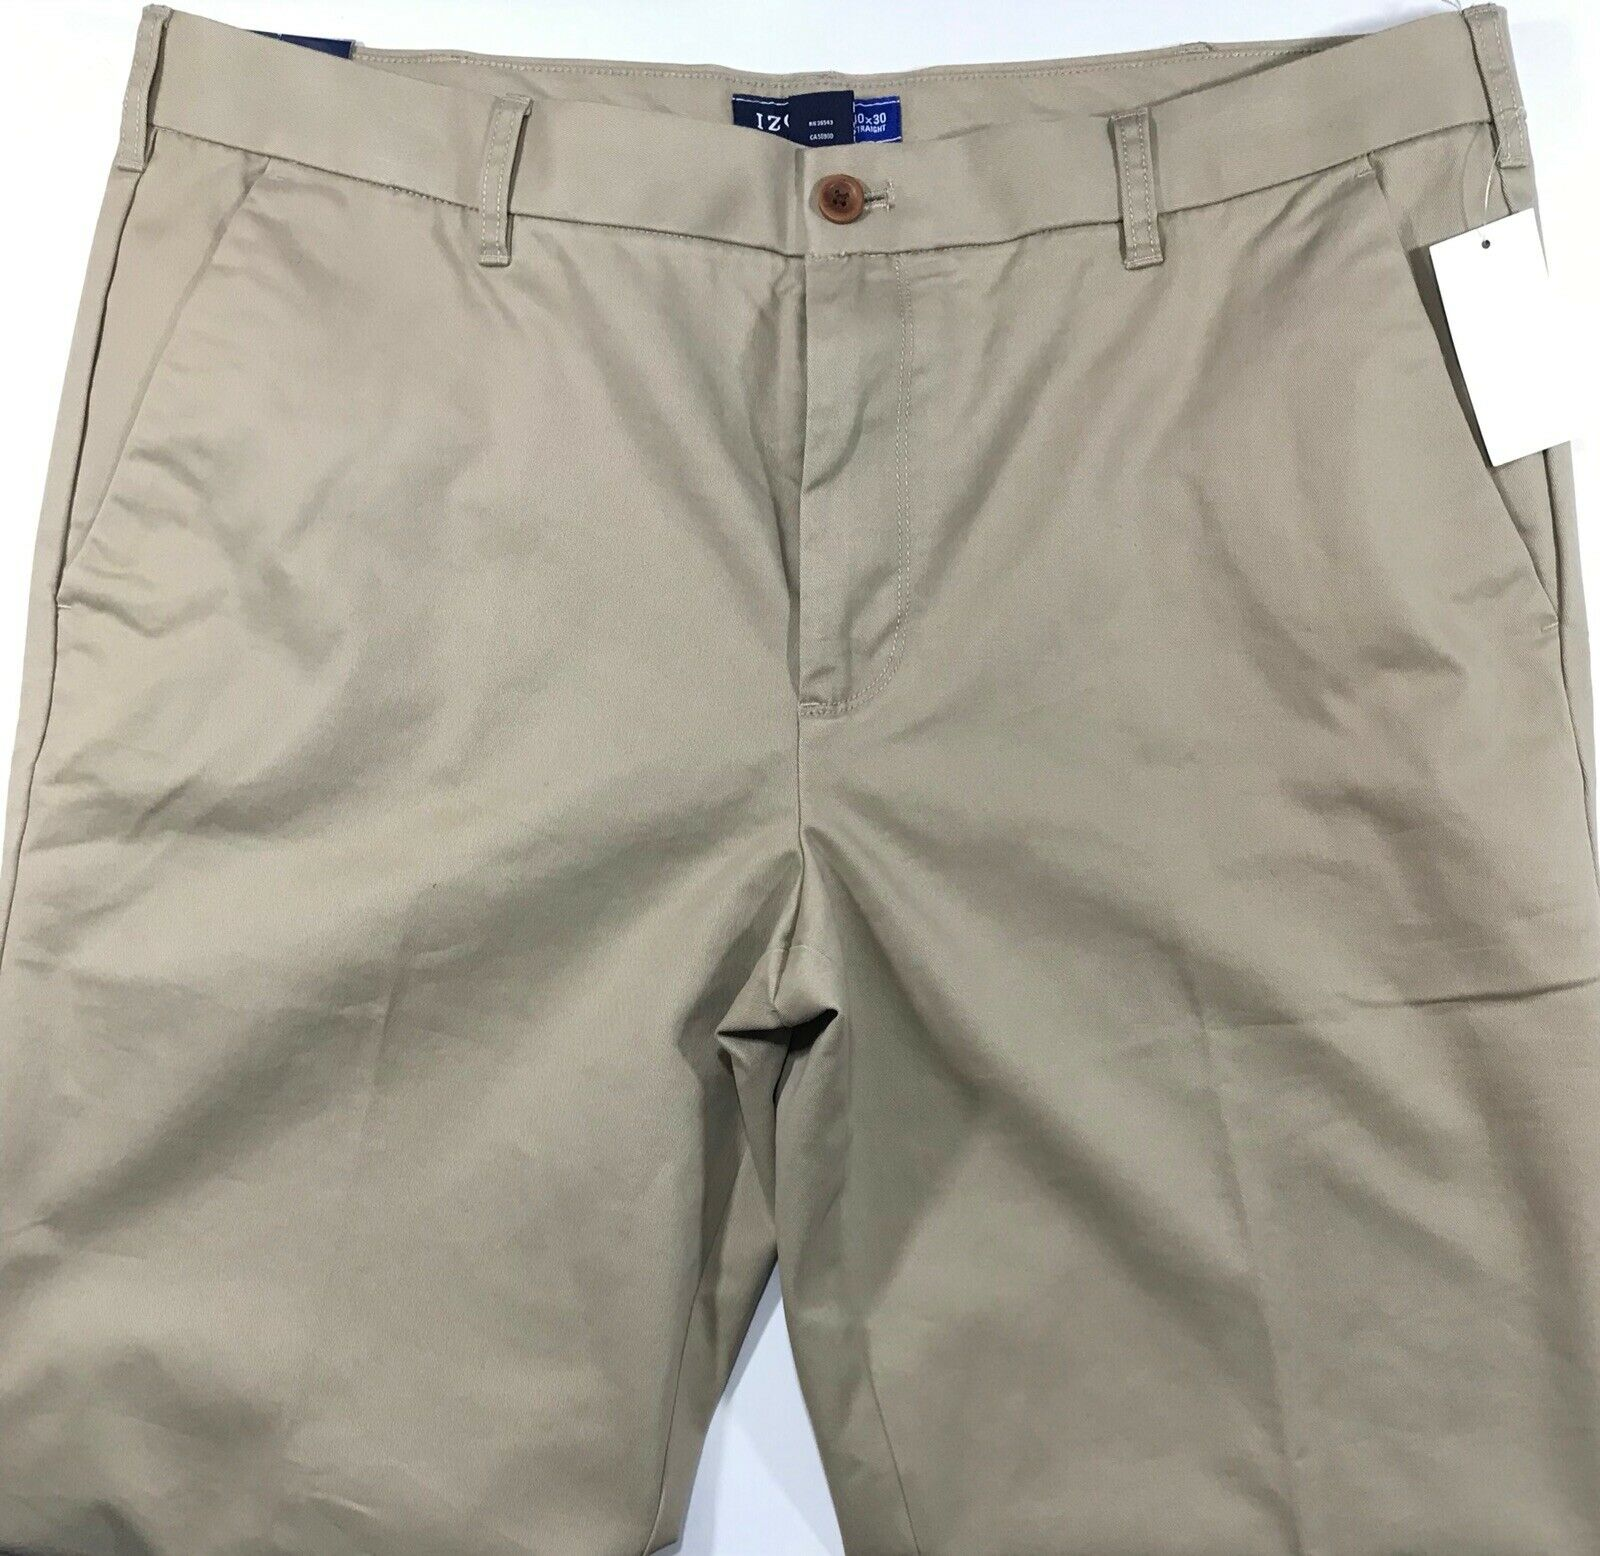 MEN'S PANTS FLAT IZOD SPORT FLEX SIZE 40 x 30 CEDARWOOD KHAKI COTTON BLEND NWT